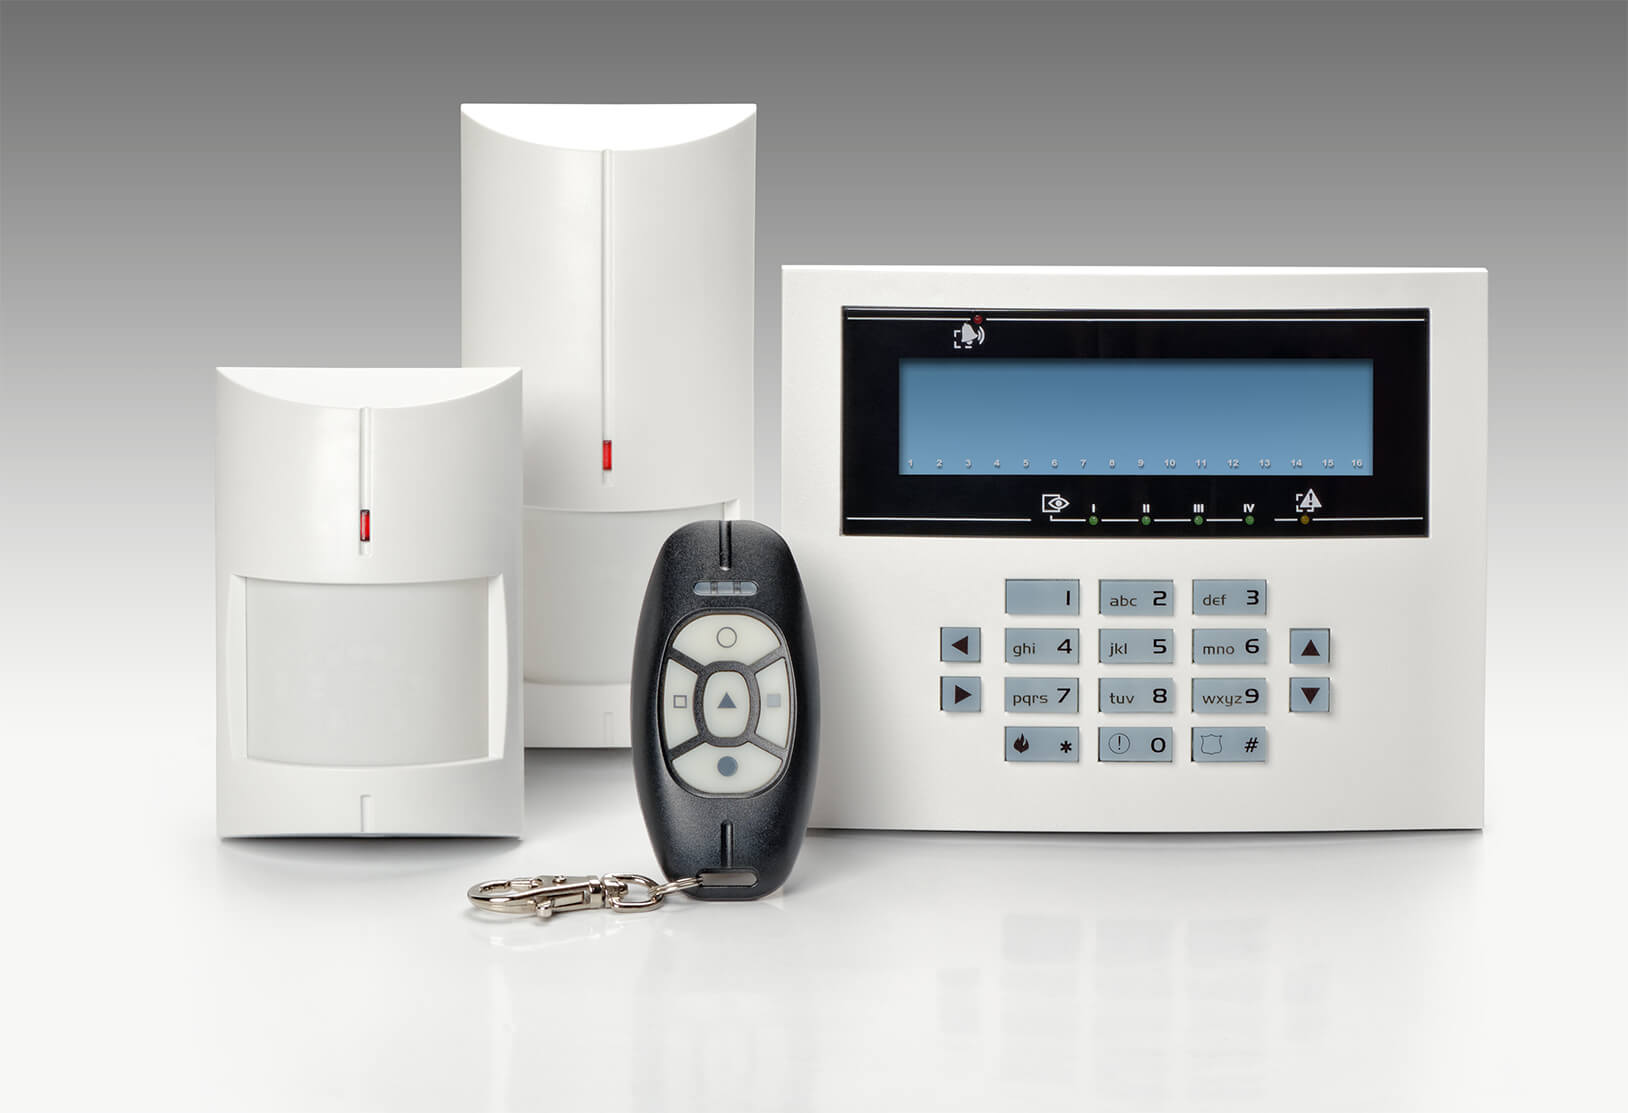 Burglar Alarms Repair in Woolwich E16 - Local Woolwich E16 alarm engineers.Call 02078872244 - See cost/price for burglar alarm repair and book your alarm engineer. No Hidden charges,No Contracts, Book as you need.Engineers on demand.All alarm makes repaired.Same day service ability.